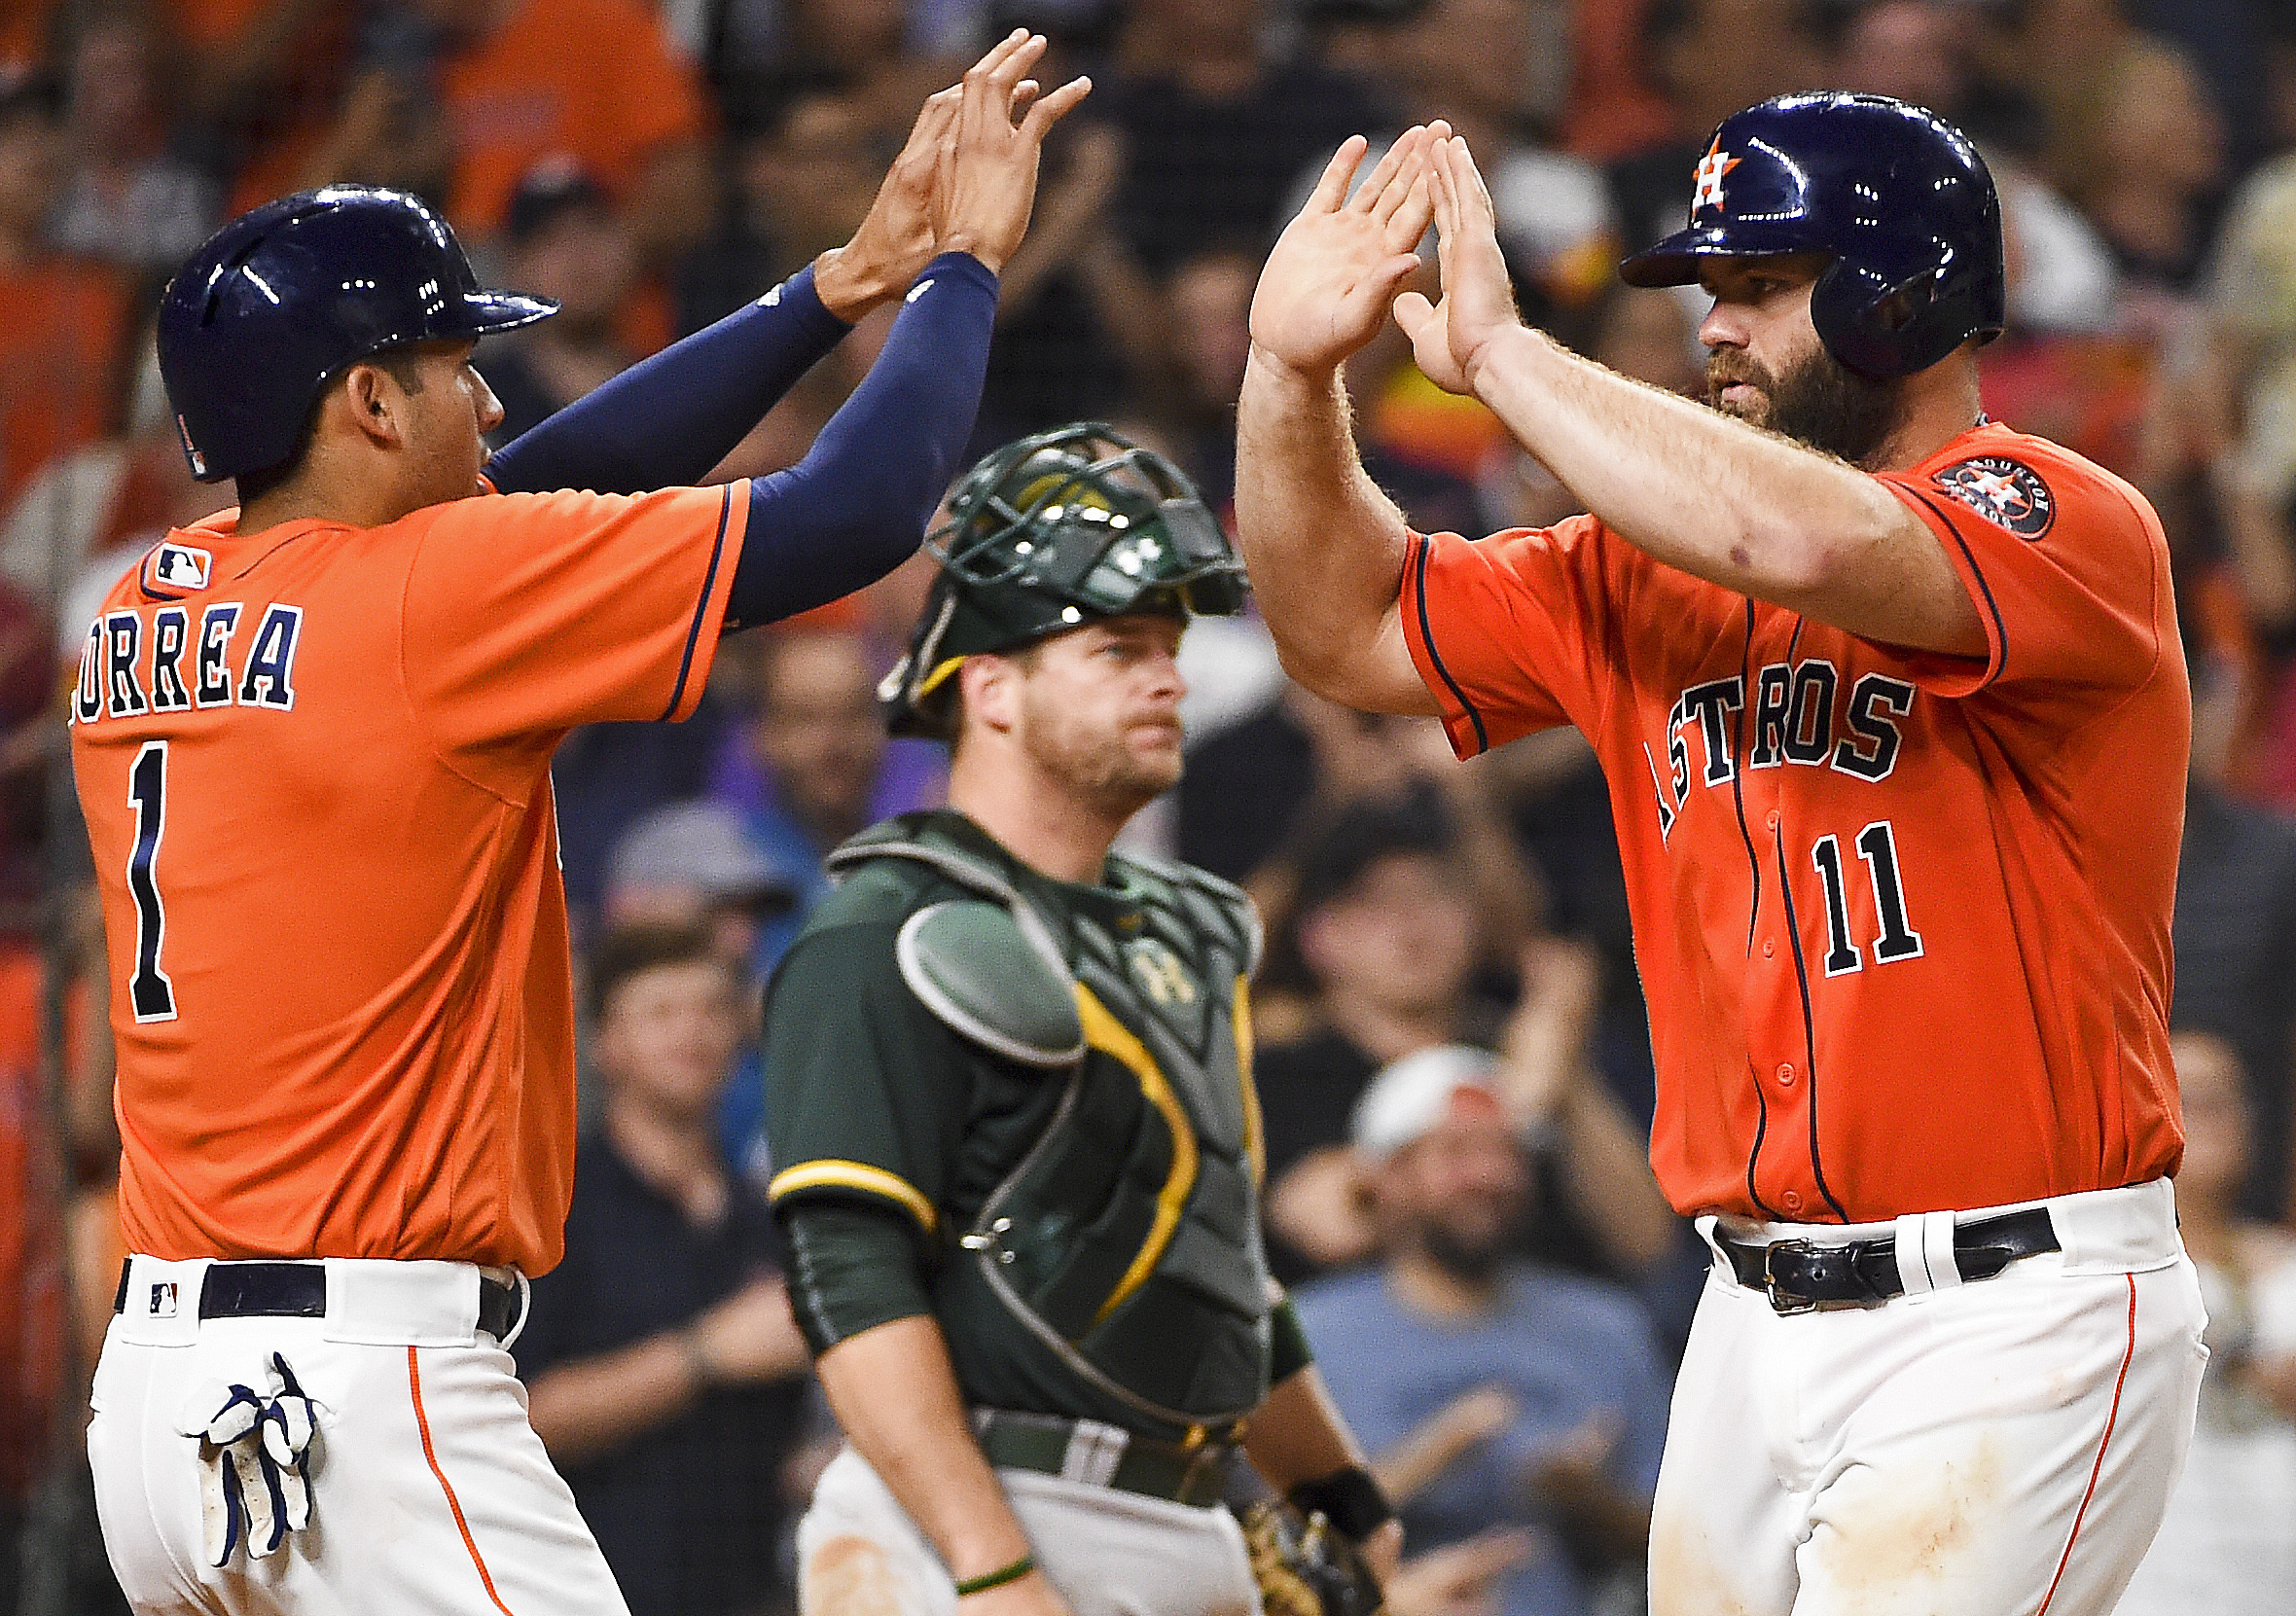 Houston Astros' Evan Gattis (11) celebrates his two-run home run off Oakland Athletics relief pitcher Andrew Triggs with Carlos Correa (1) during the fourth inning of a baseball game, Friday, June 3, 2016, in Houston. (AP Photo/Eric Christian Smith)